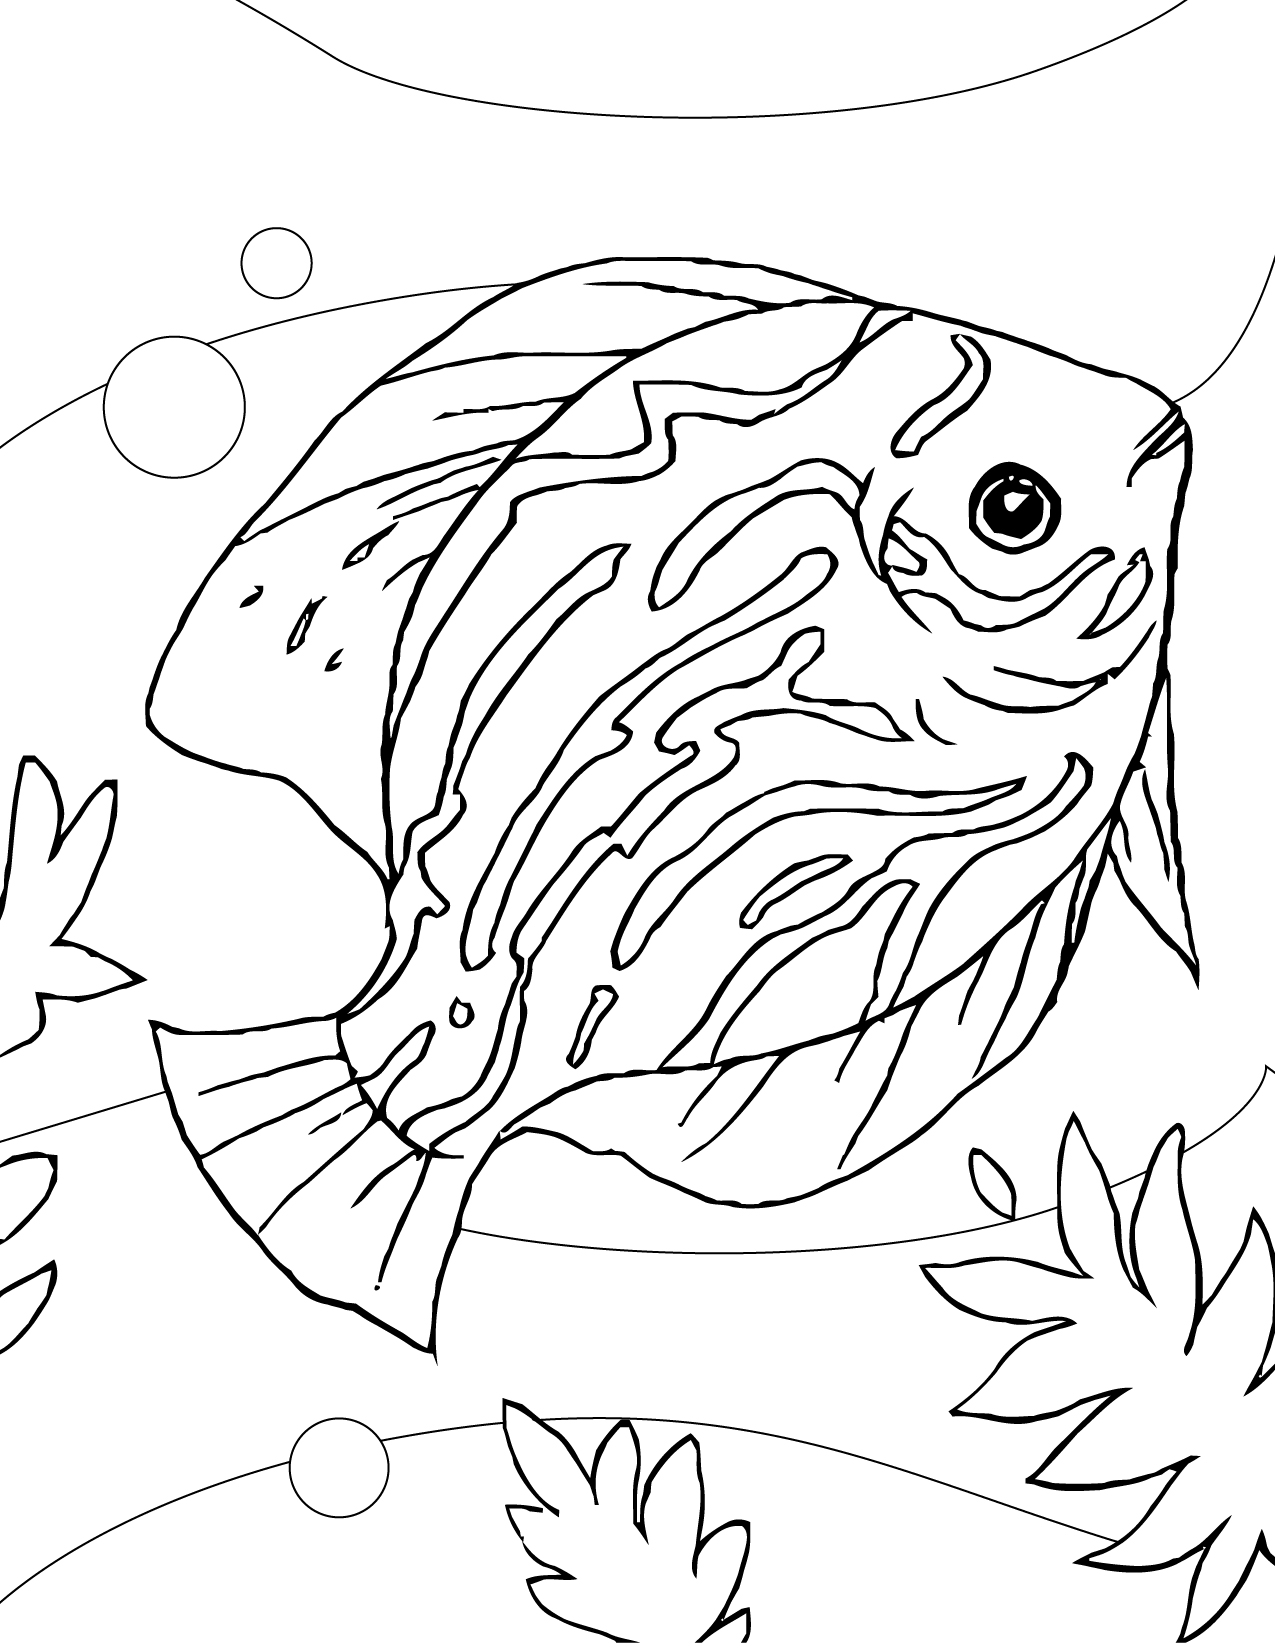 Adult Best Aquarium Coloring Page Images best aquarium fish coloring pages handipoints discus images